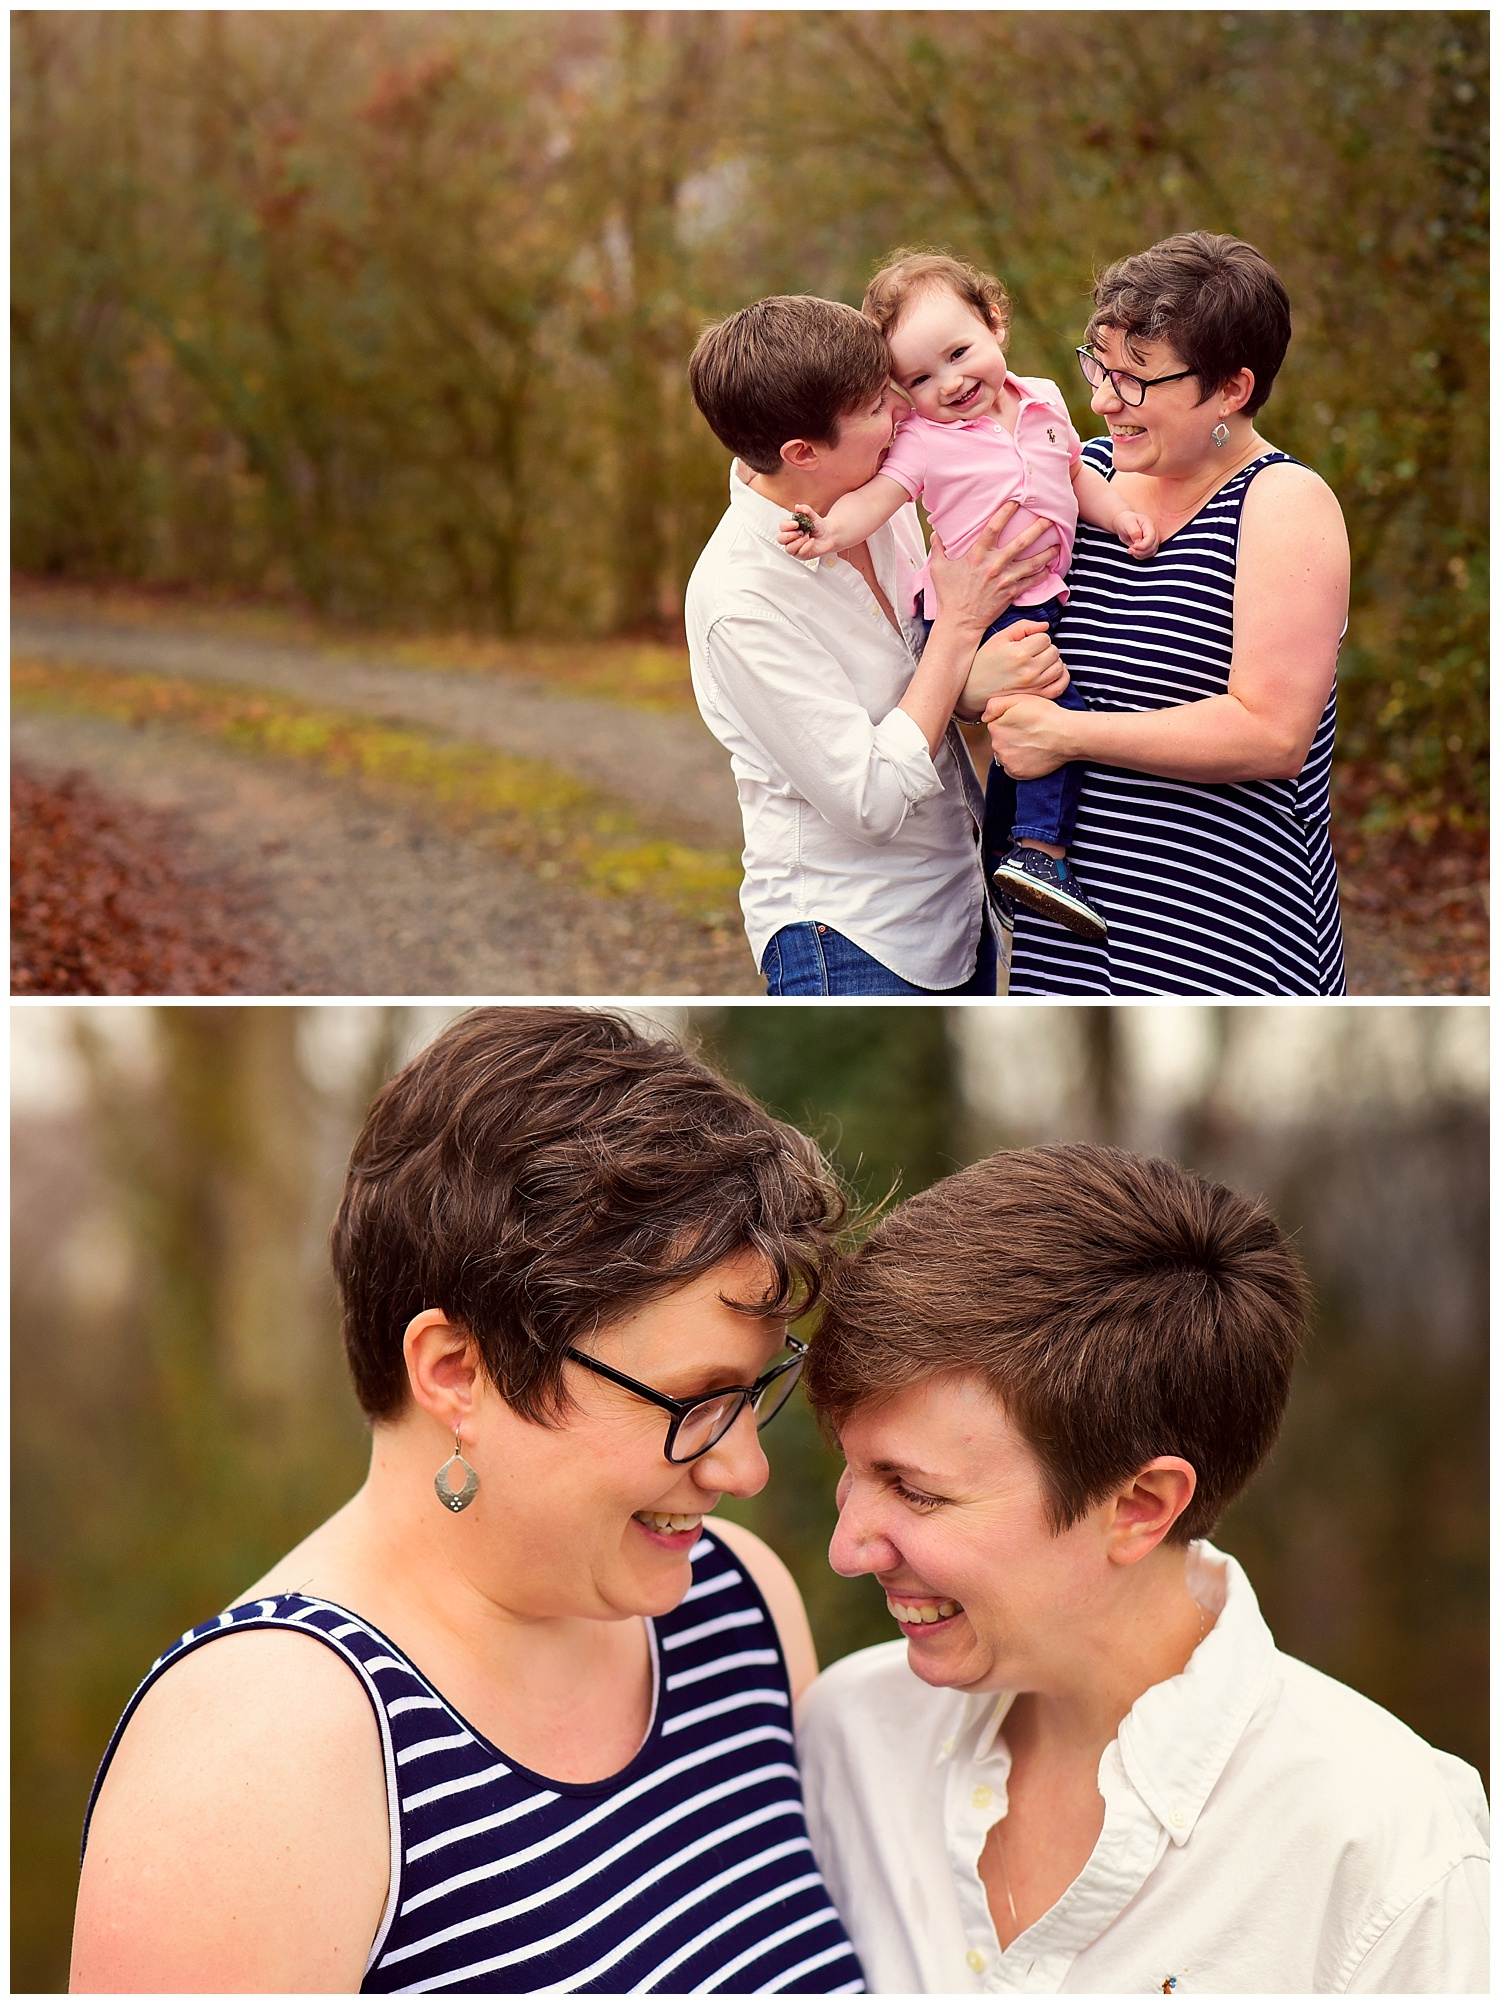 Photo shoot with Lesbian couple and daughter